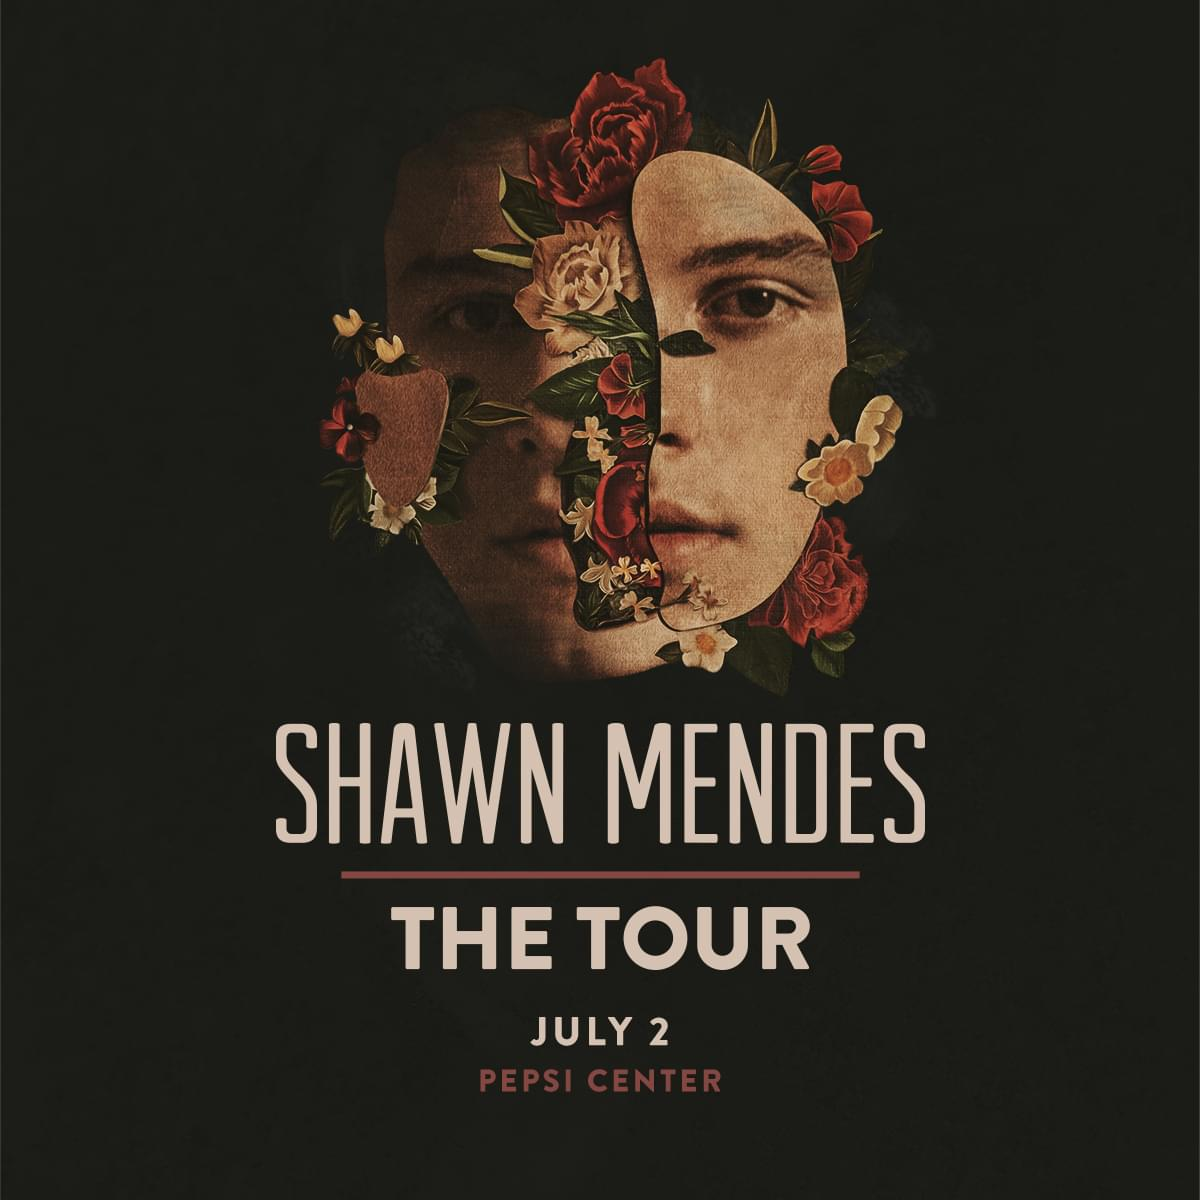 Shawn Mendes | July 2, 2019 | Pepsi Center